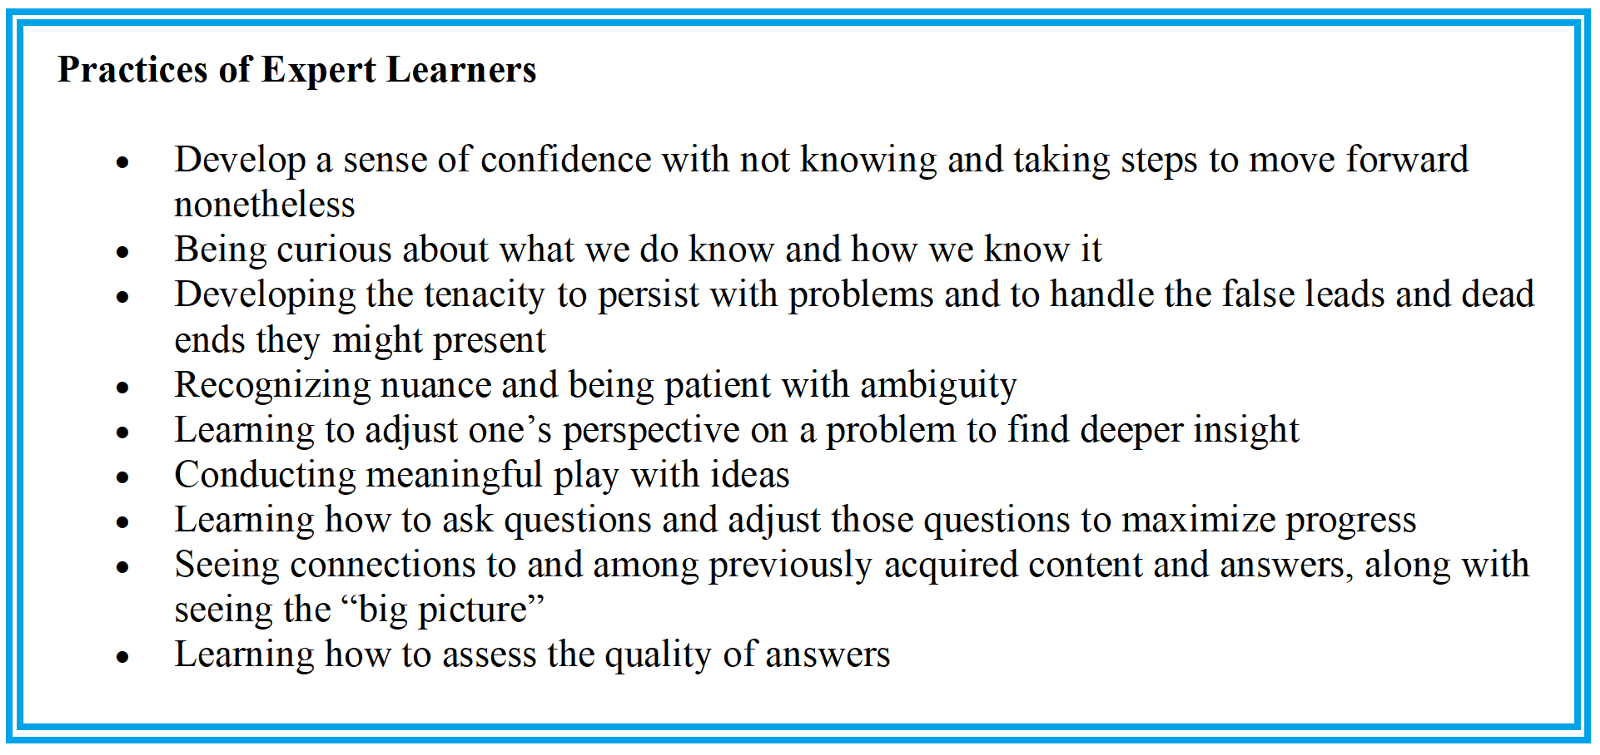 Practices of Expert Learners